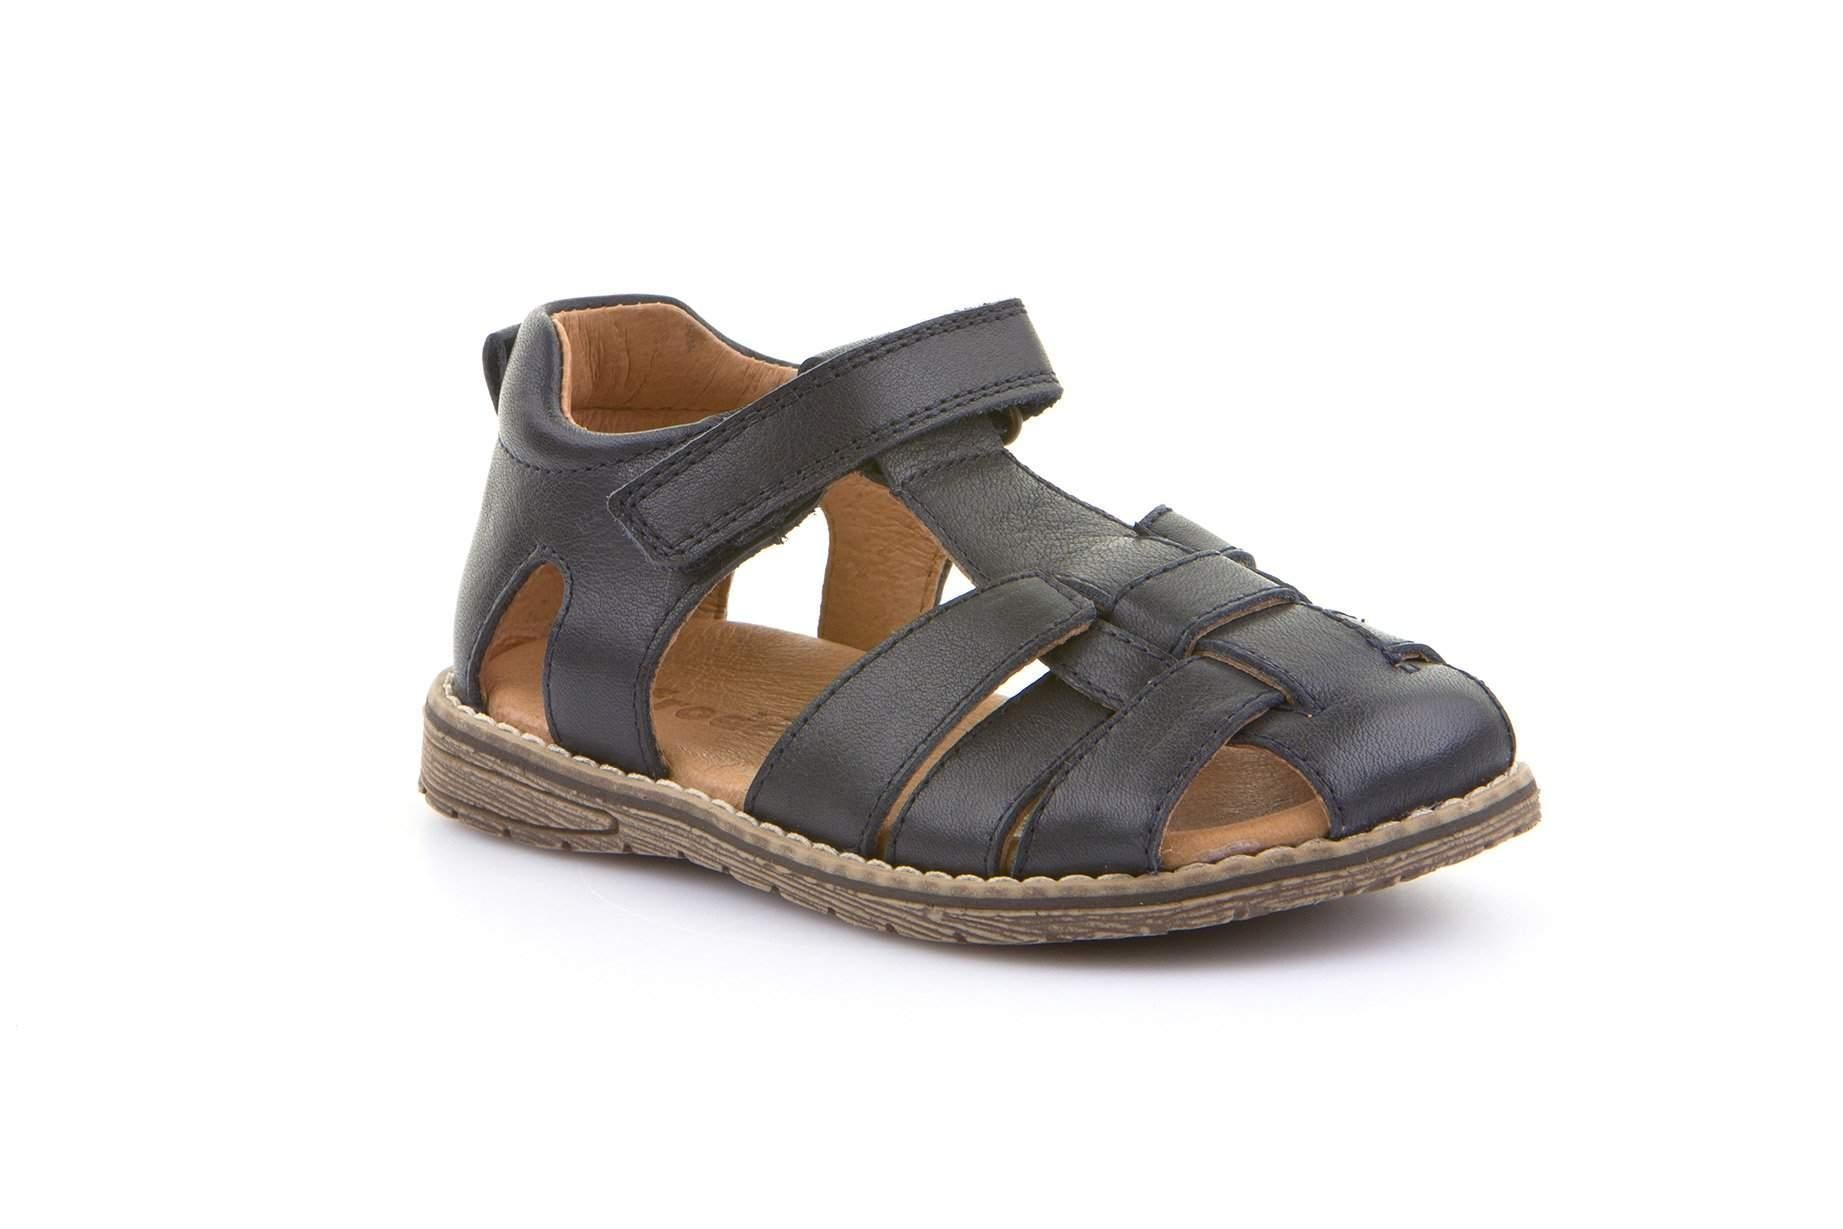 Froddo/G3150139/Navy/Boys Leather Sandals - ShoeKid.ca